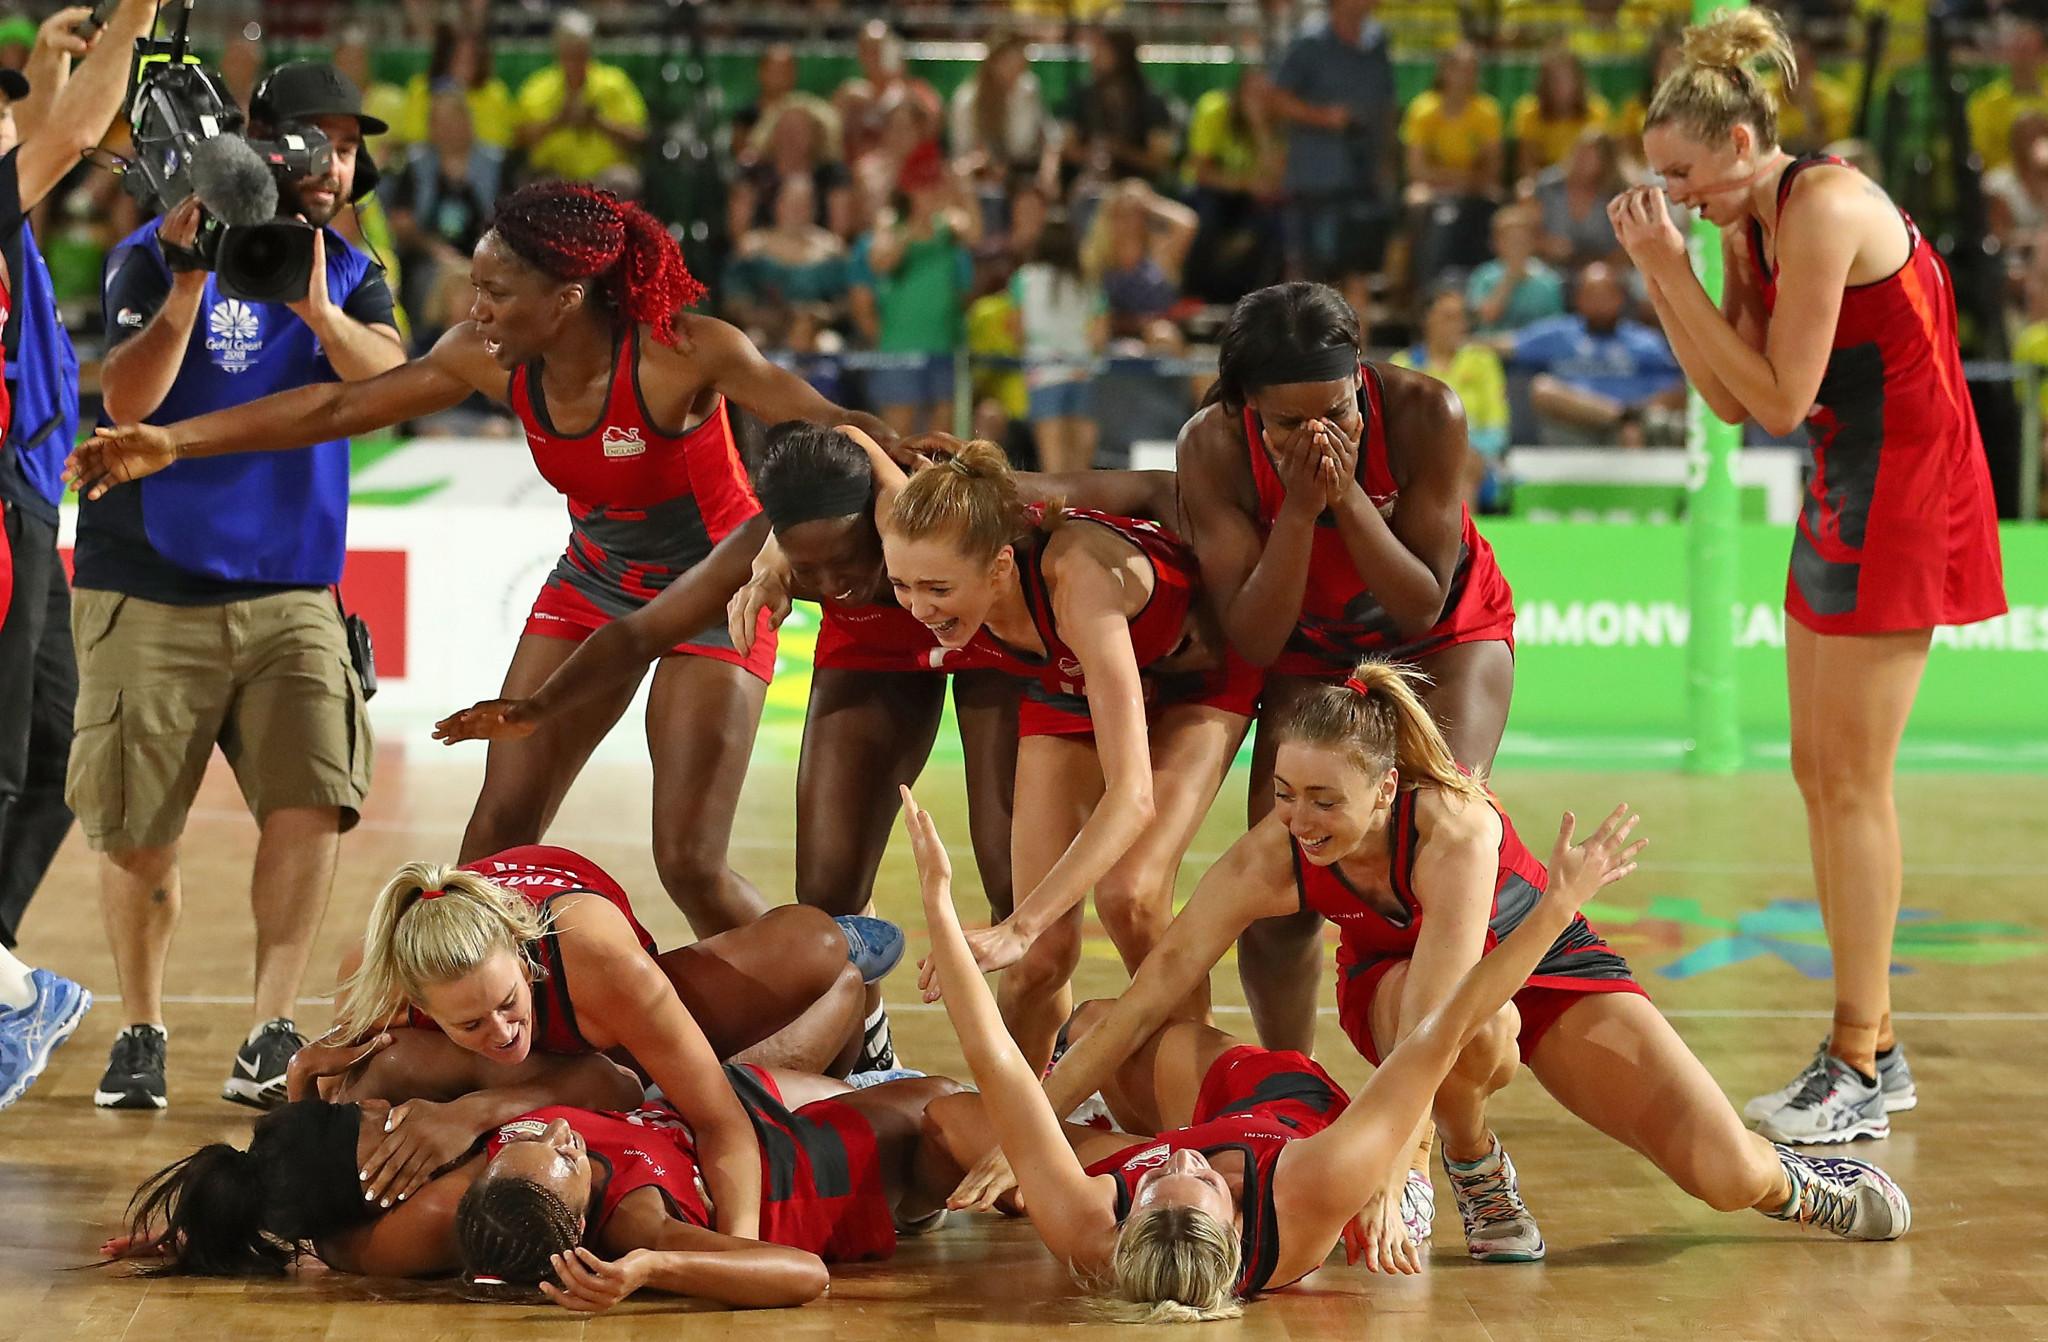 England's last-gasp Commonwealth Games gold was one of the moments of Gold Coast 2018 ©Getty Images